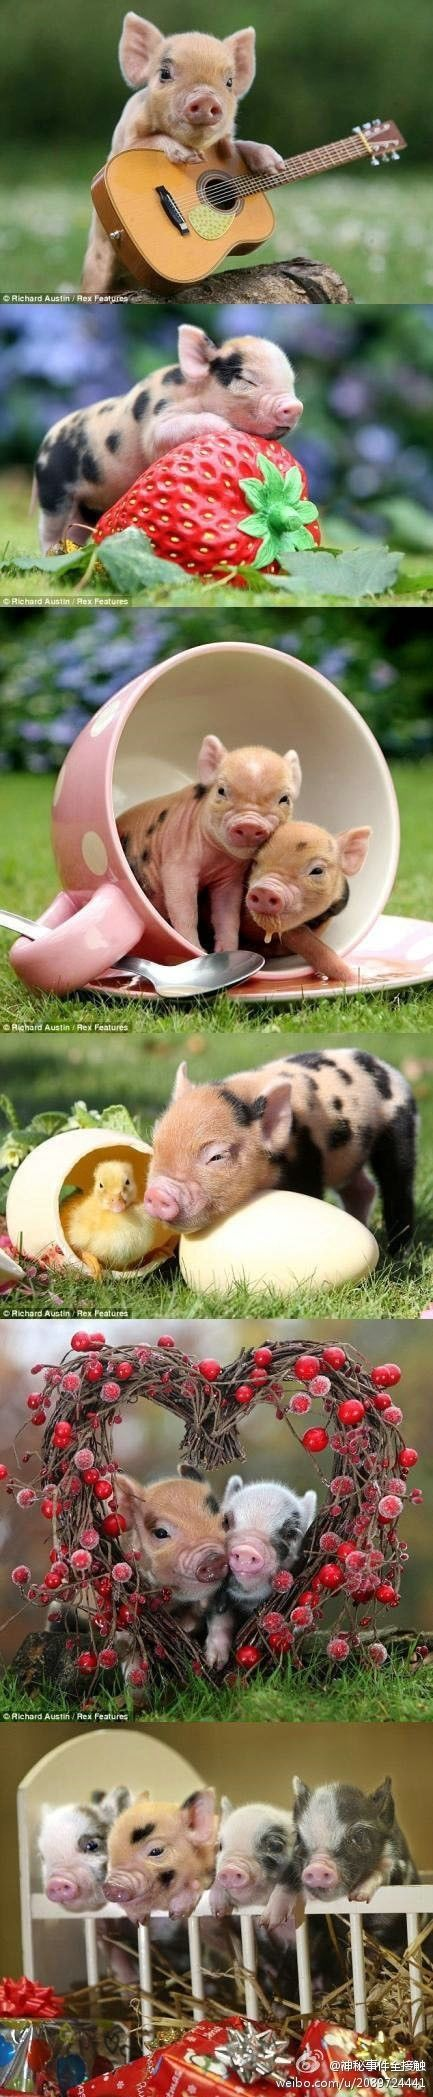 Adorable baby pigs!